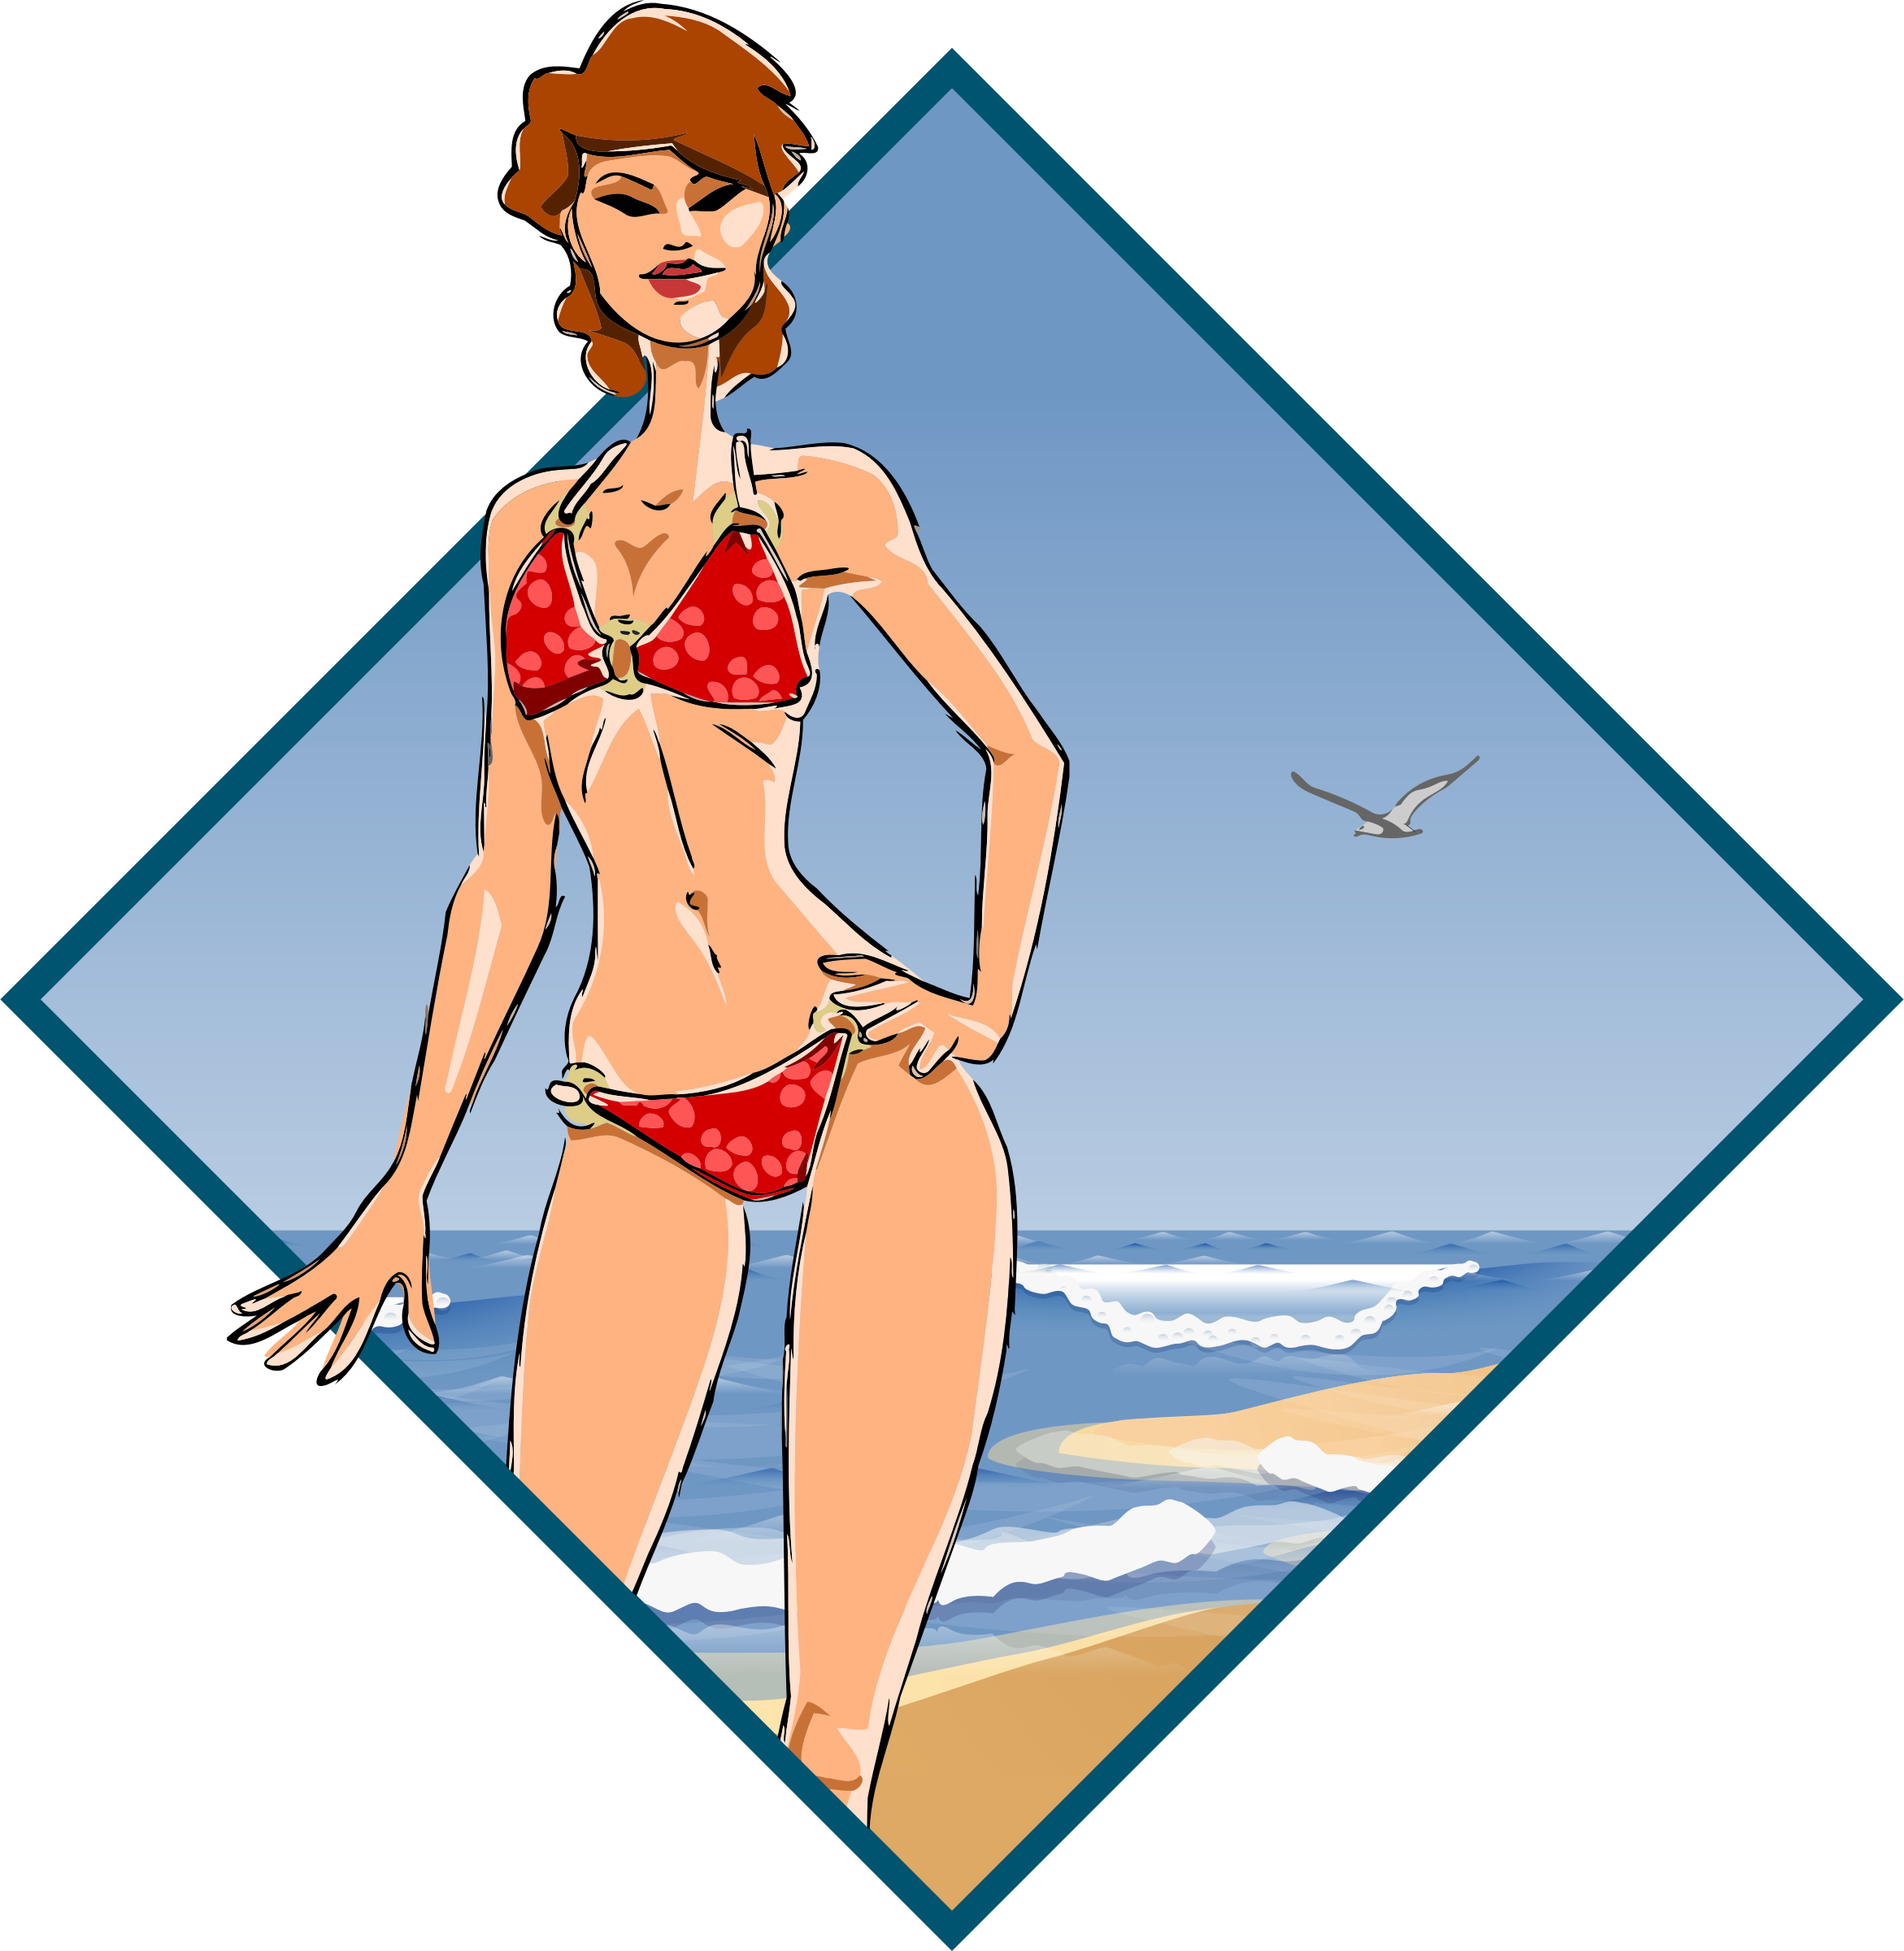 Girl at the beach by Firkin